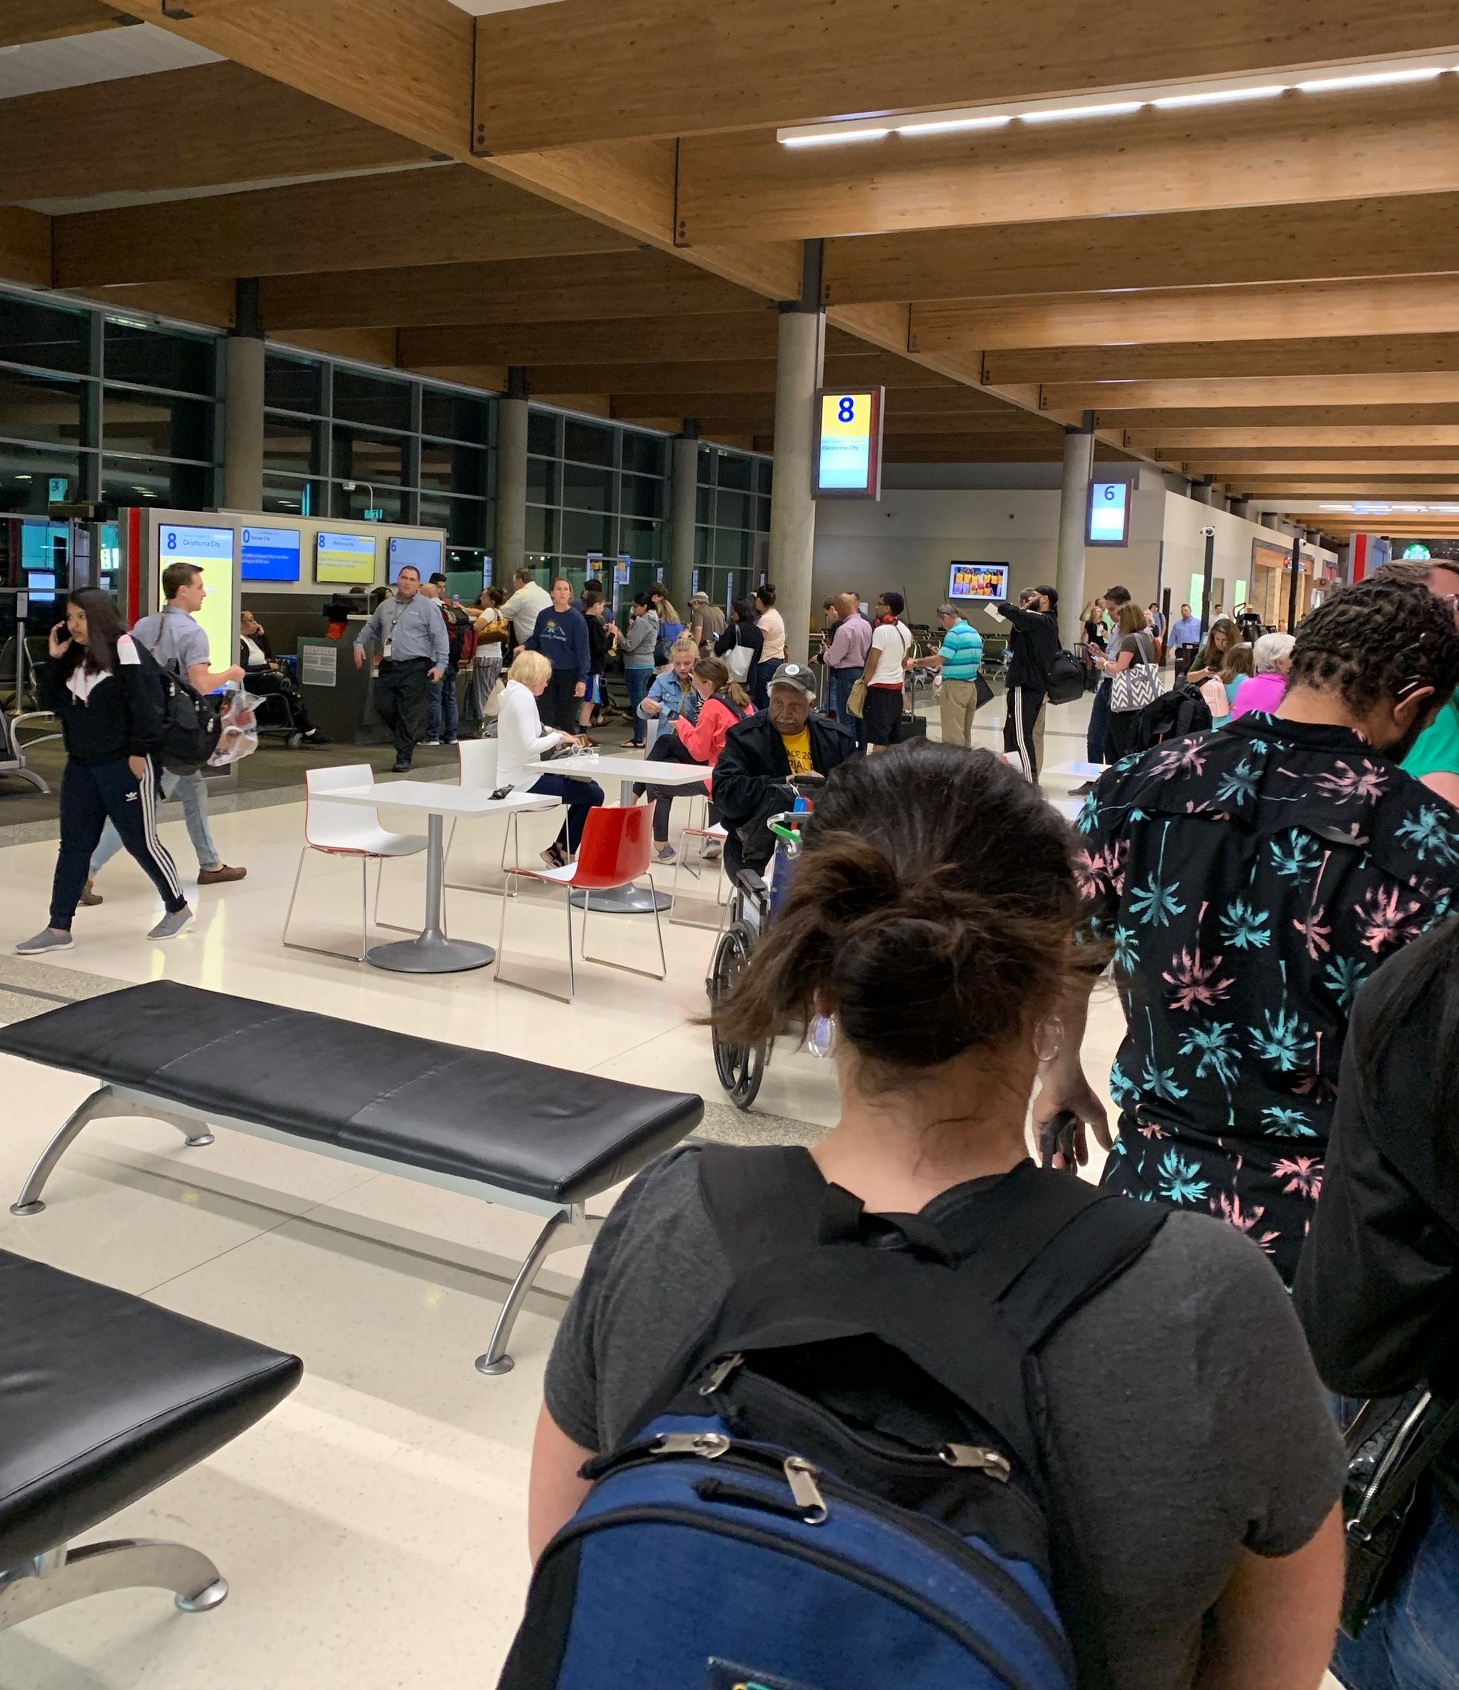 Long line of would-be passengers waiting to talk to a Southwest representative after the flight was cancelled for the night